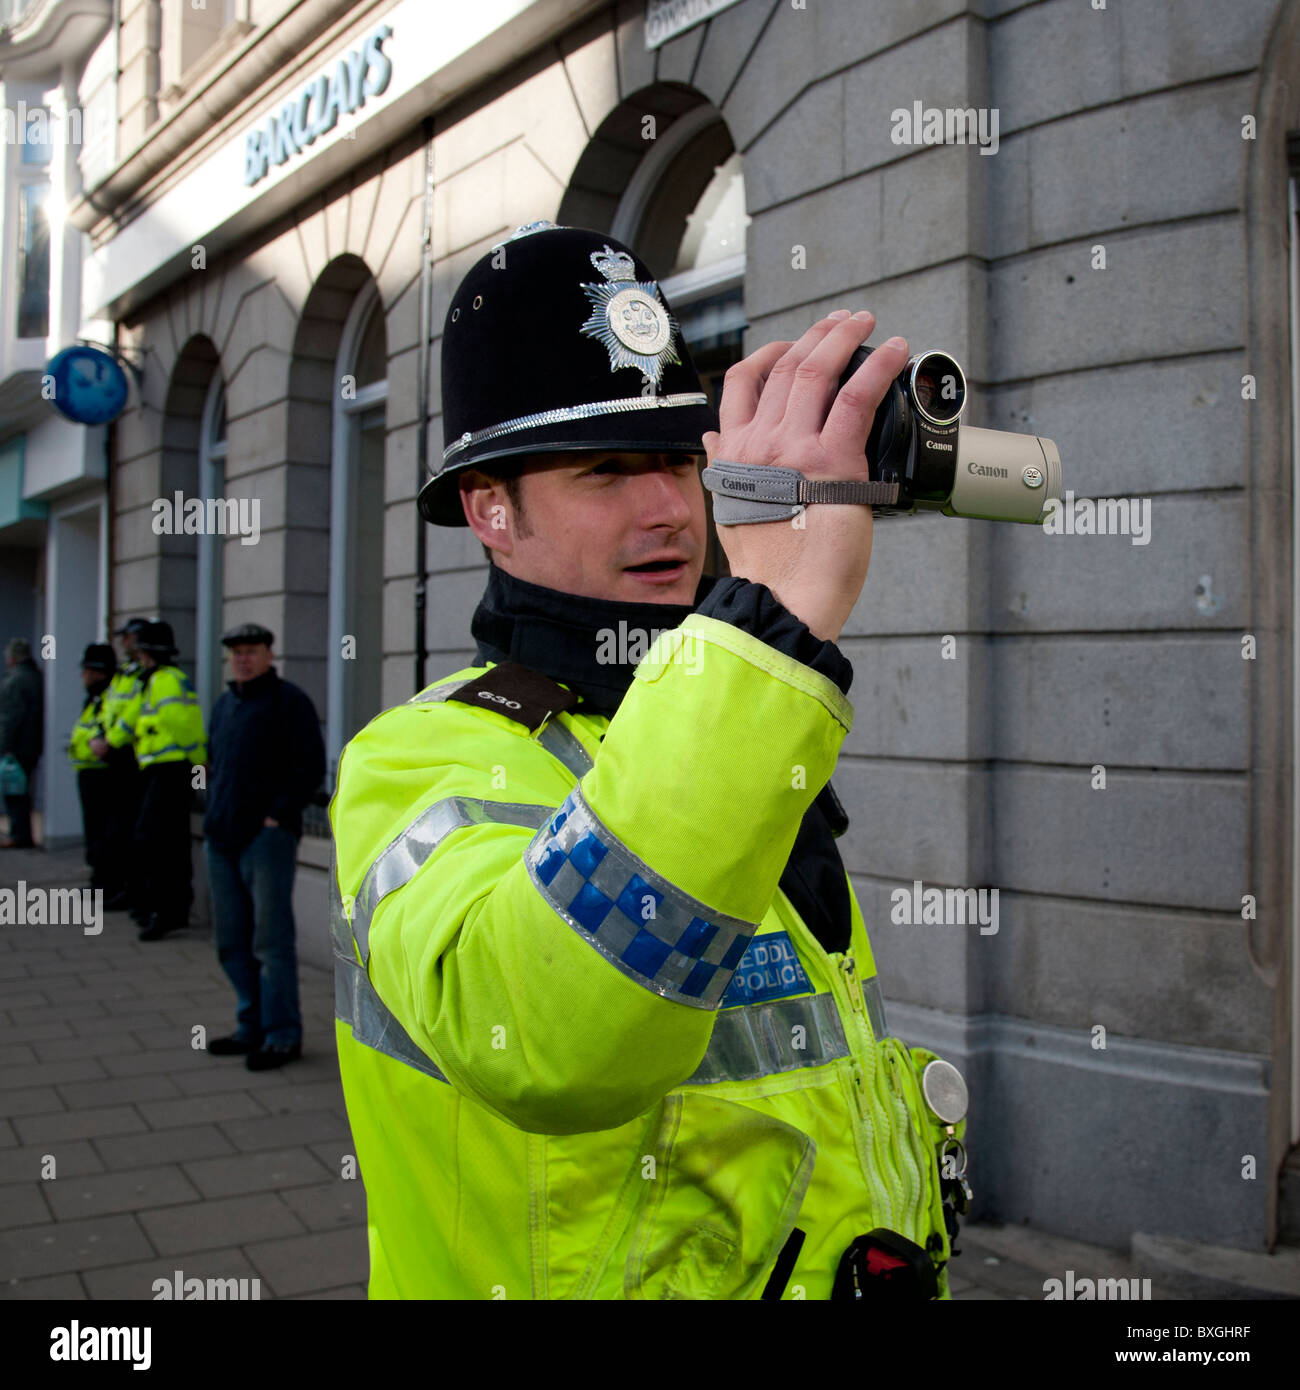 Police FIT forward intelligent team officer videoing student protest against education cuts, Aberystwyth Wales UK - Stock Image